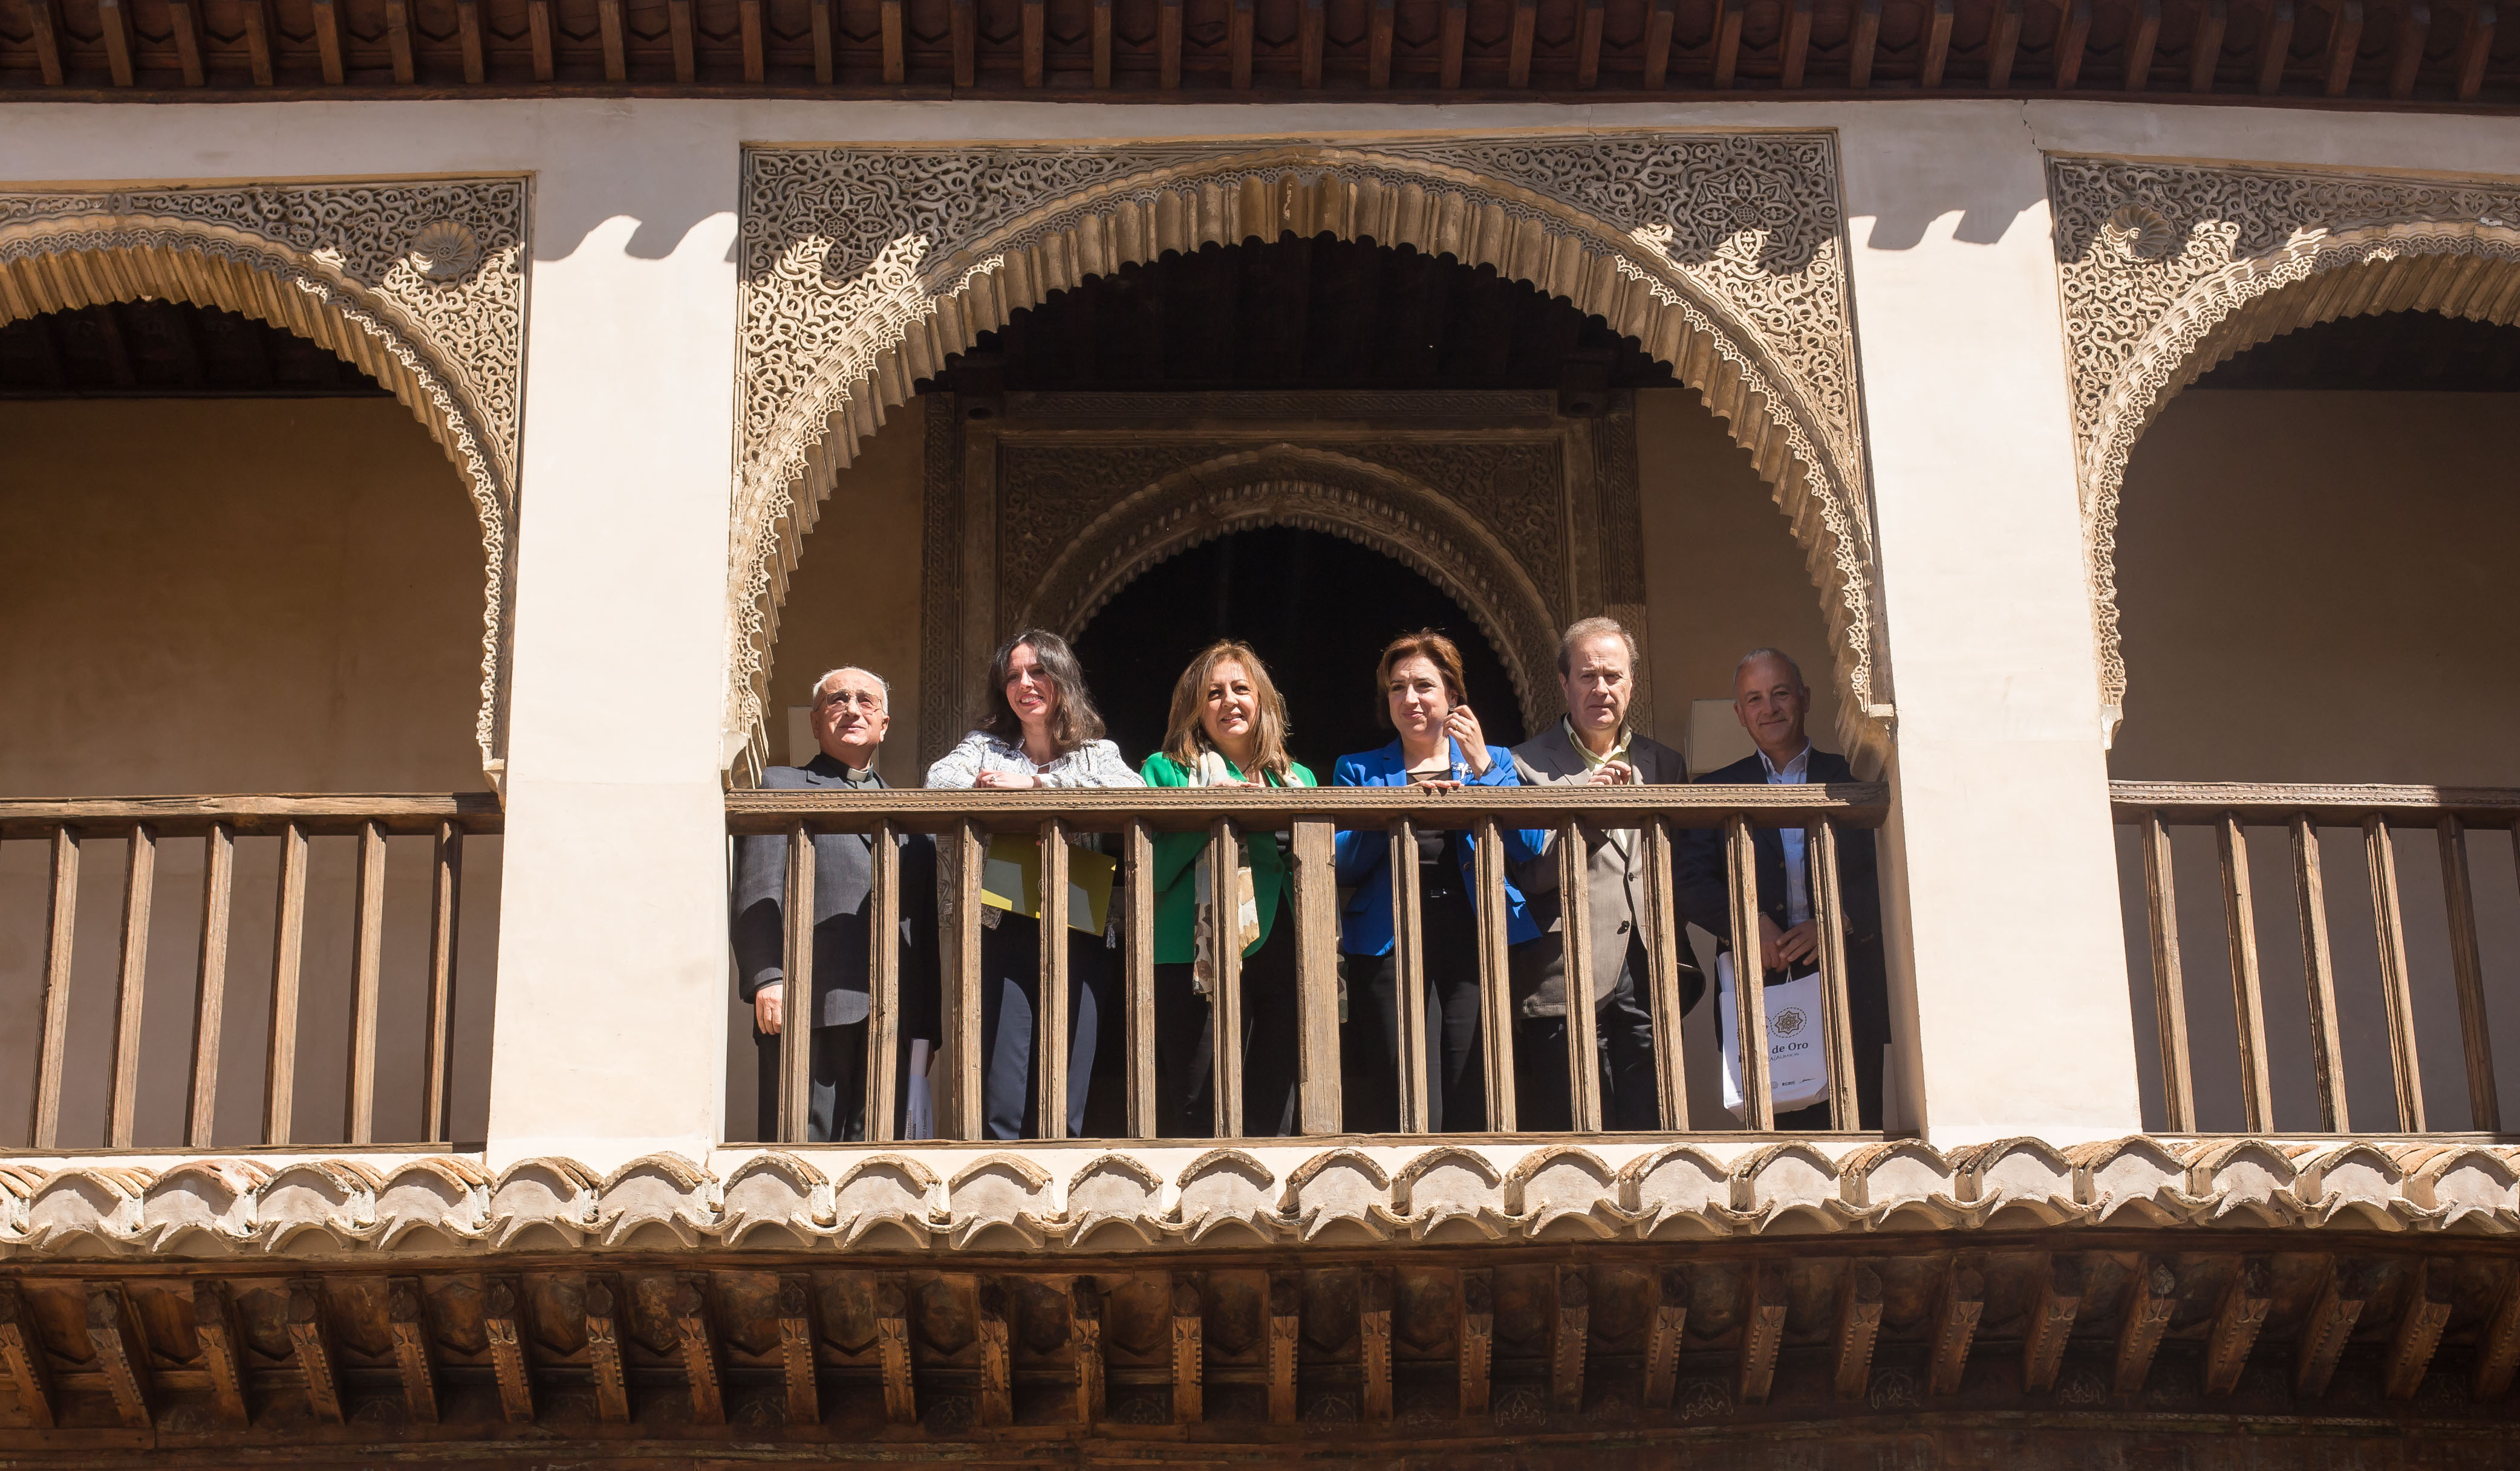 With the Launching of the Dobla de oro teh Alhambra looks towards The Albaicín and Granada